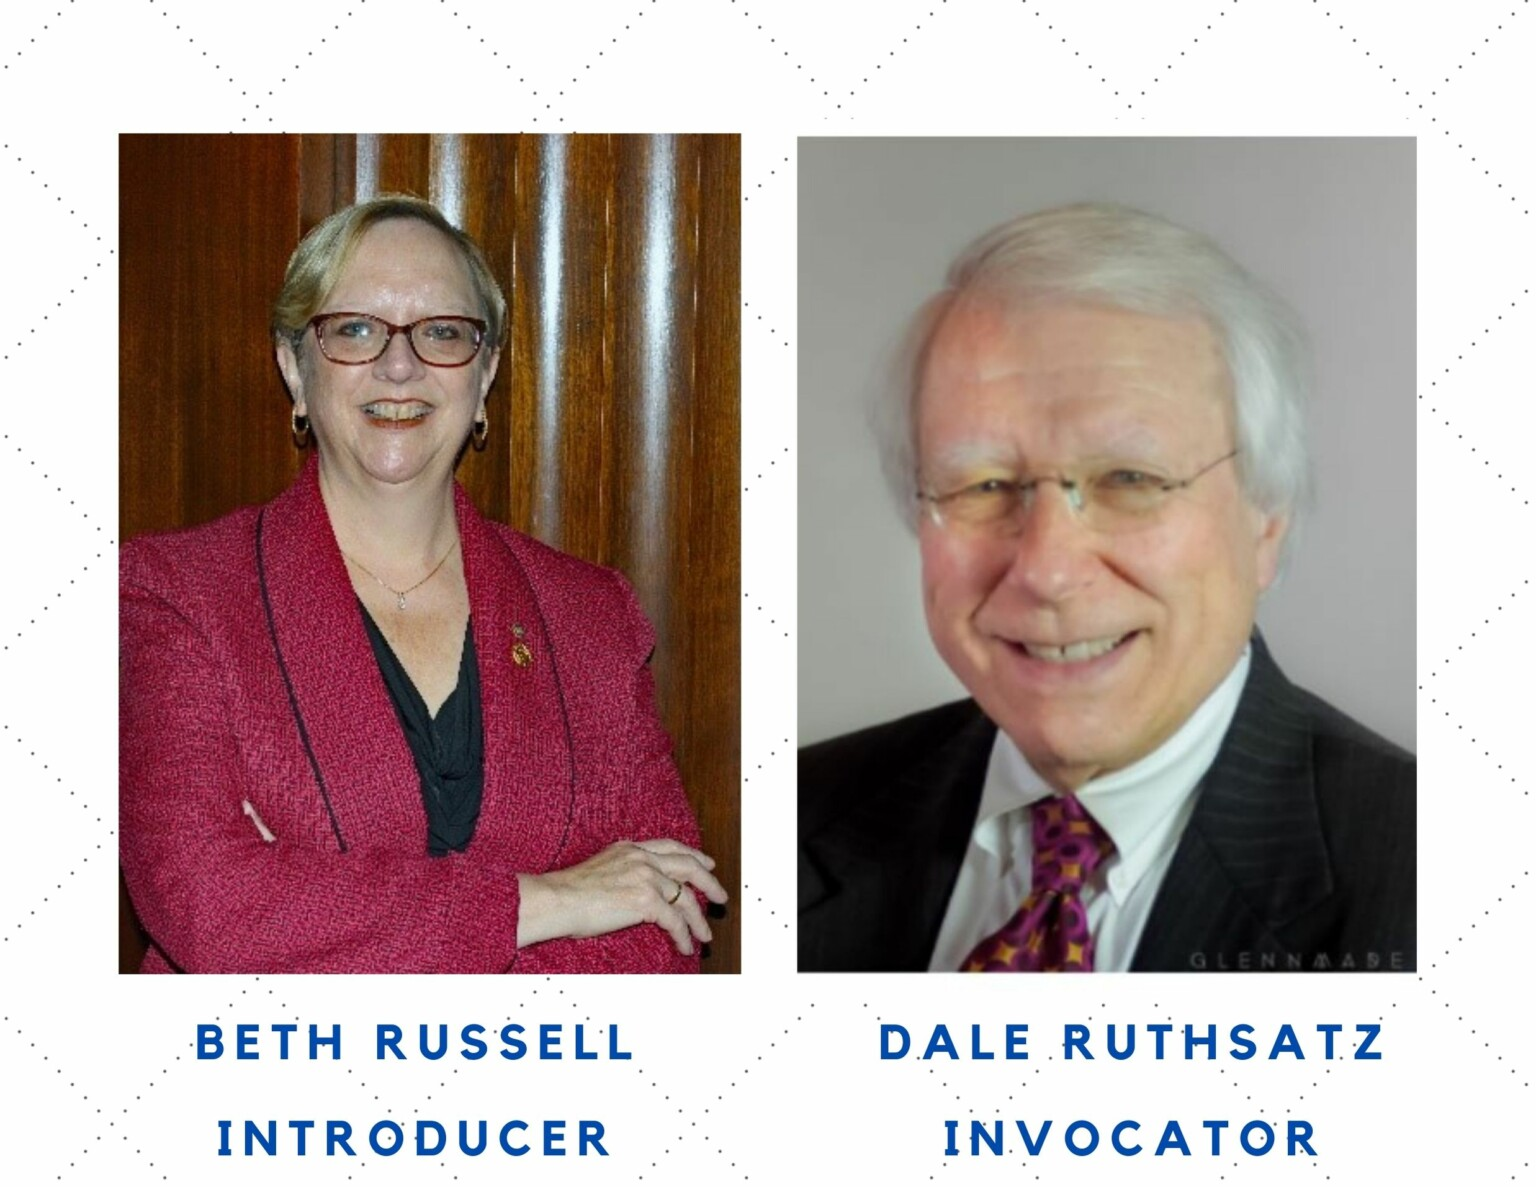 Beth Russell in introducing our speaker Vincent Flewellen at St. Louis Rotary on 9-16-21. Dale Ruthsatz is the invocator.